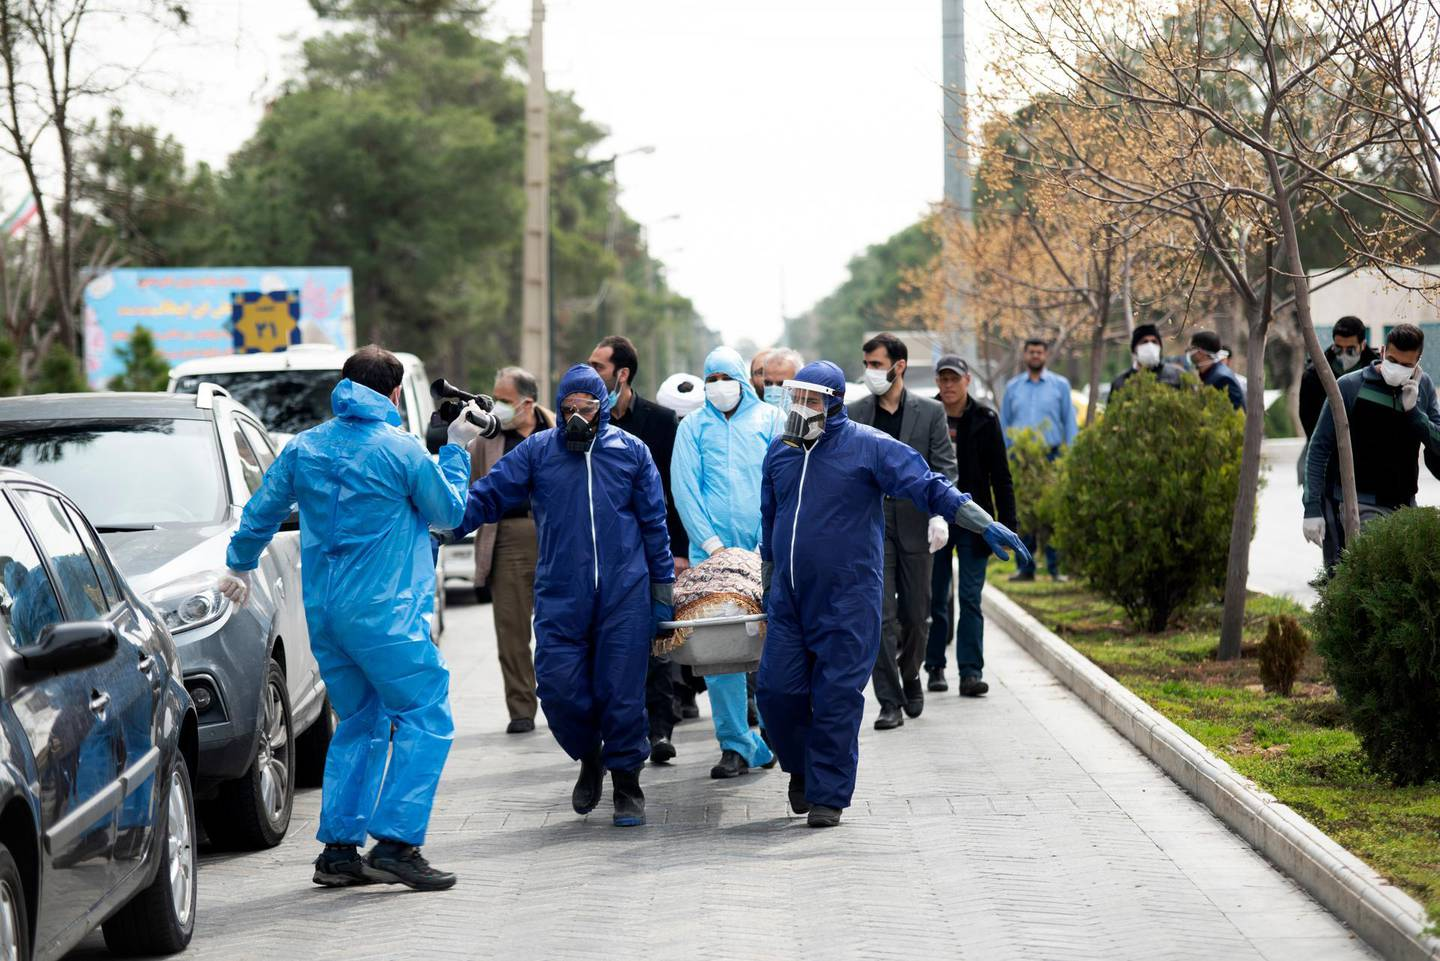 FILE— In this Sunday, March 8, 2020 file photo, men wearing protective gear carry the body of Fatemeh Rahbar, a lawmaker-elect from Tehran constituency, who died on Saturday after being infected with the new coronavirus, at Behesht-e-Zahra cemetery, just outside Tehran, Iran. Nine out of 10 cases of the virus in the Middle East come from the Islamic Republic. For most people, the new coronavirus causes only mild or moderate symptoms. For some it can cause more severe illness. (Mehdi Khanlari/Fars News Agency via AP, File)